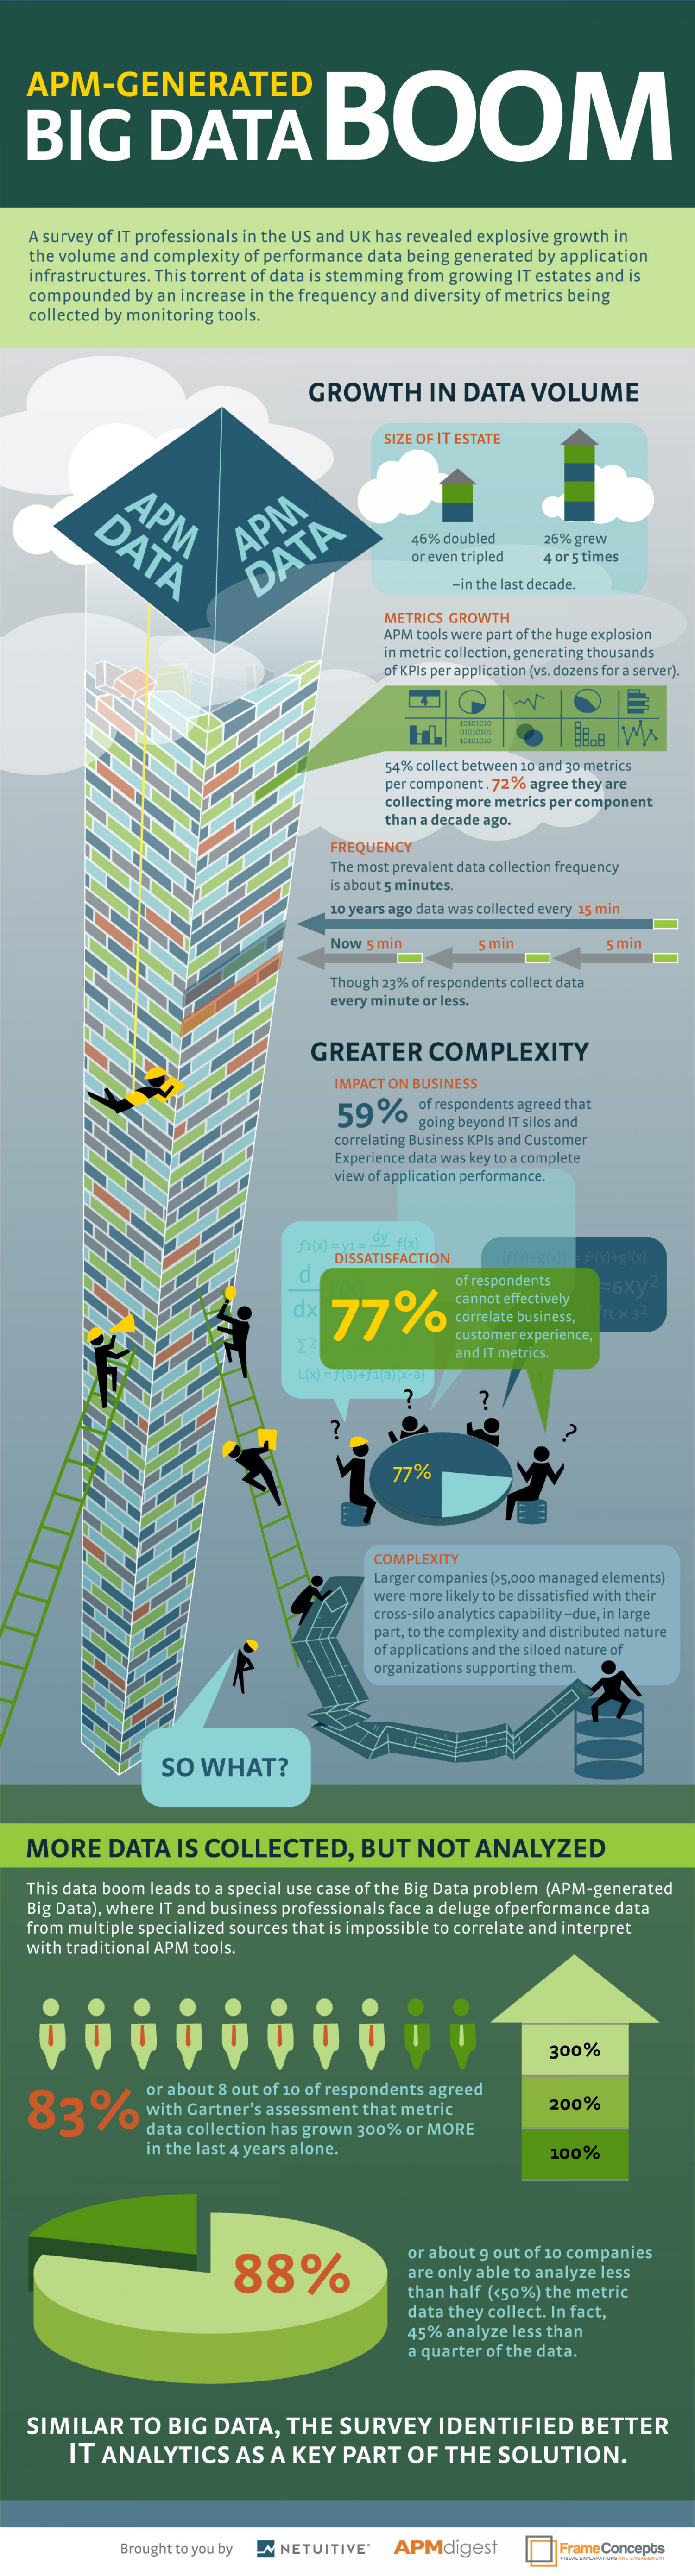 APM-Generated Big Data Boom Infographic